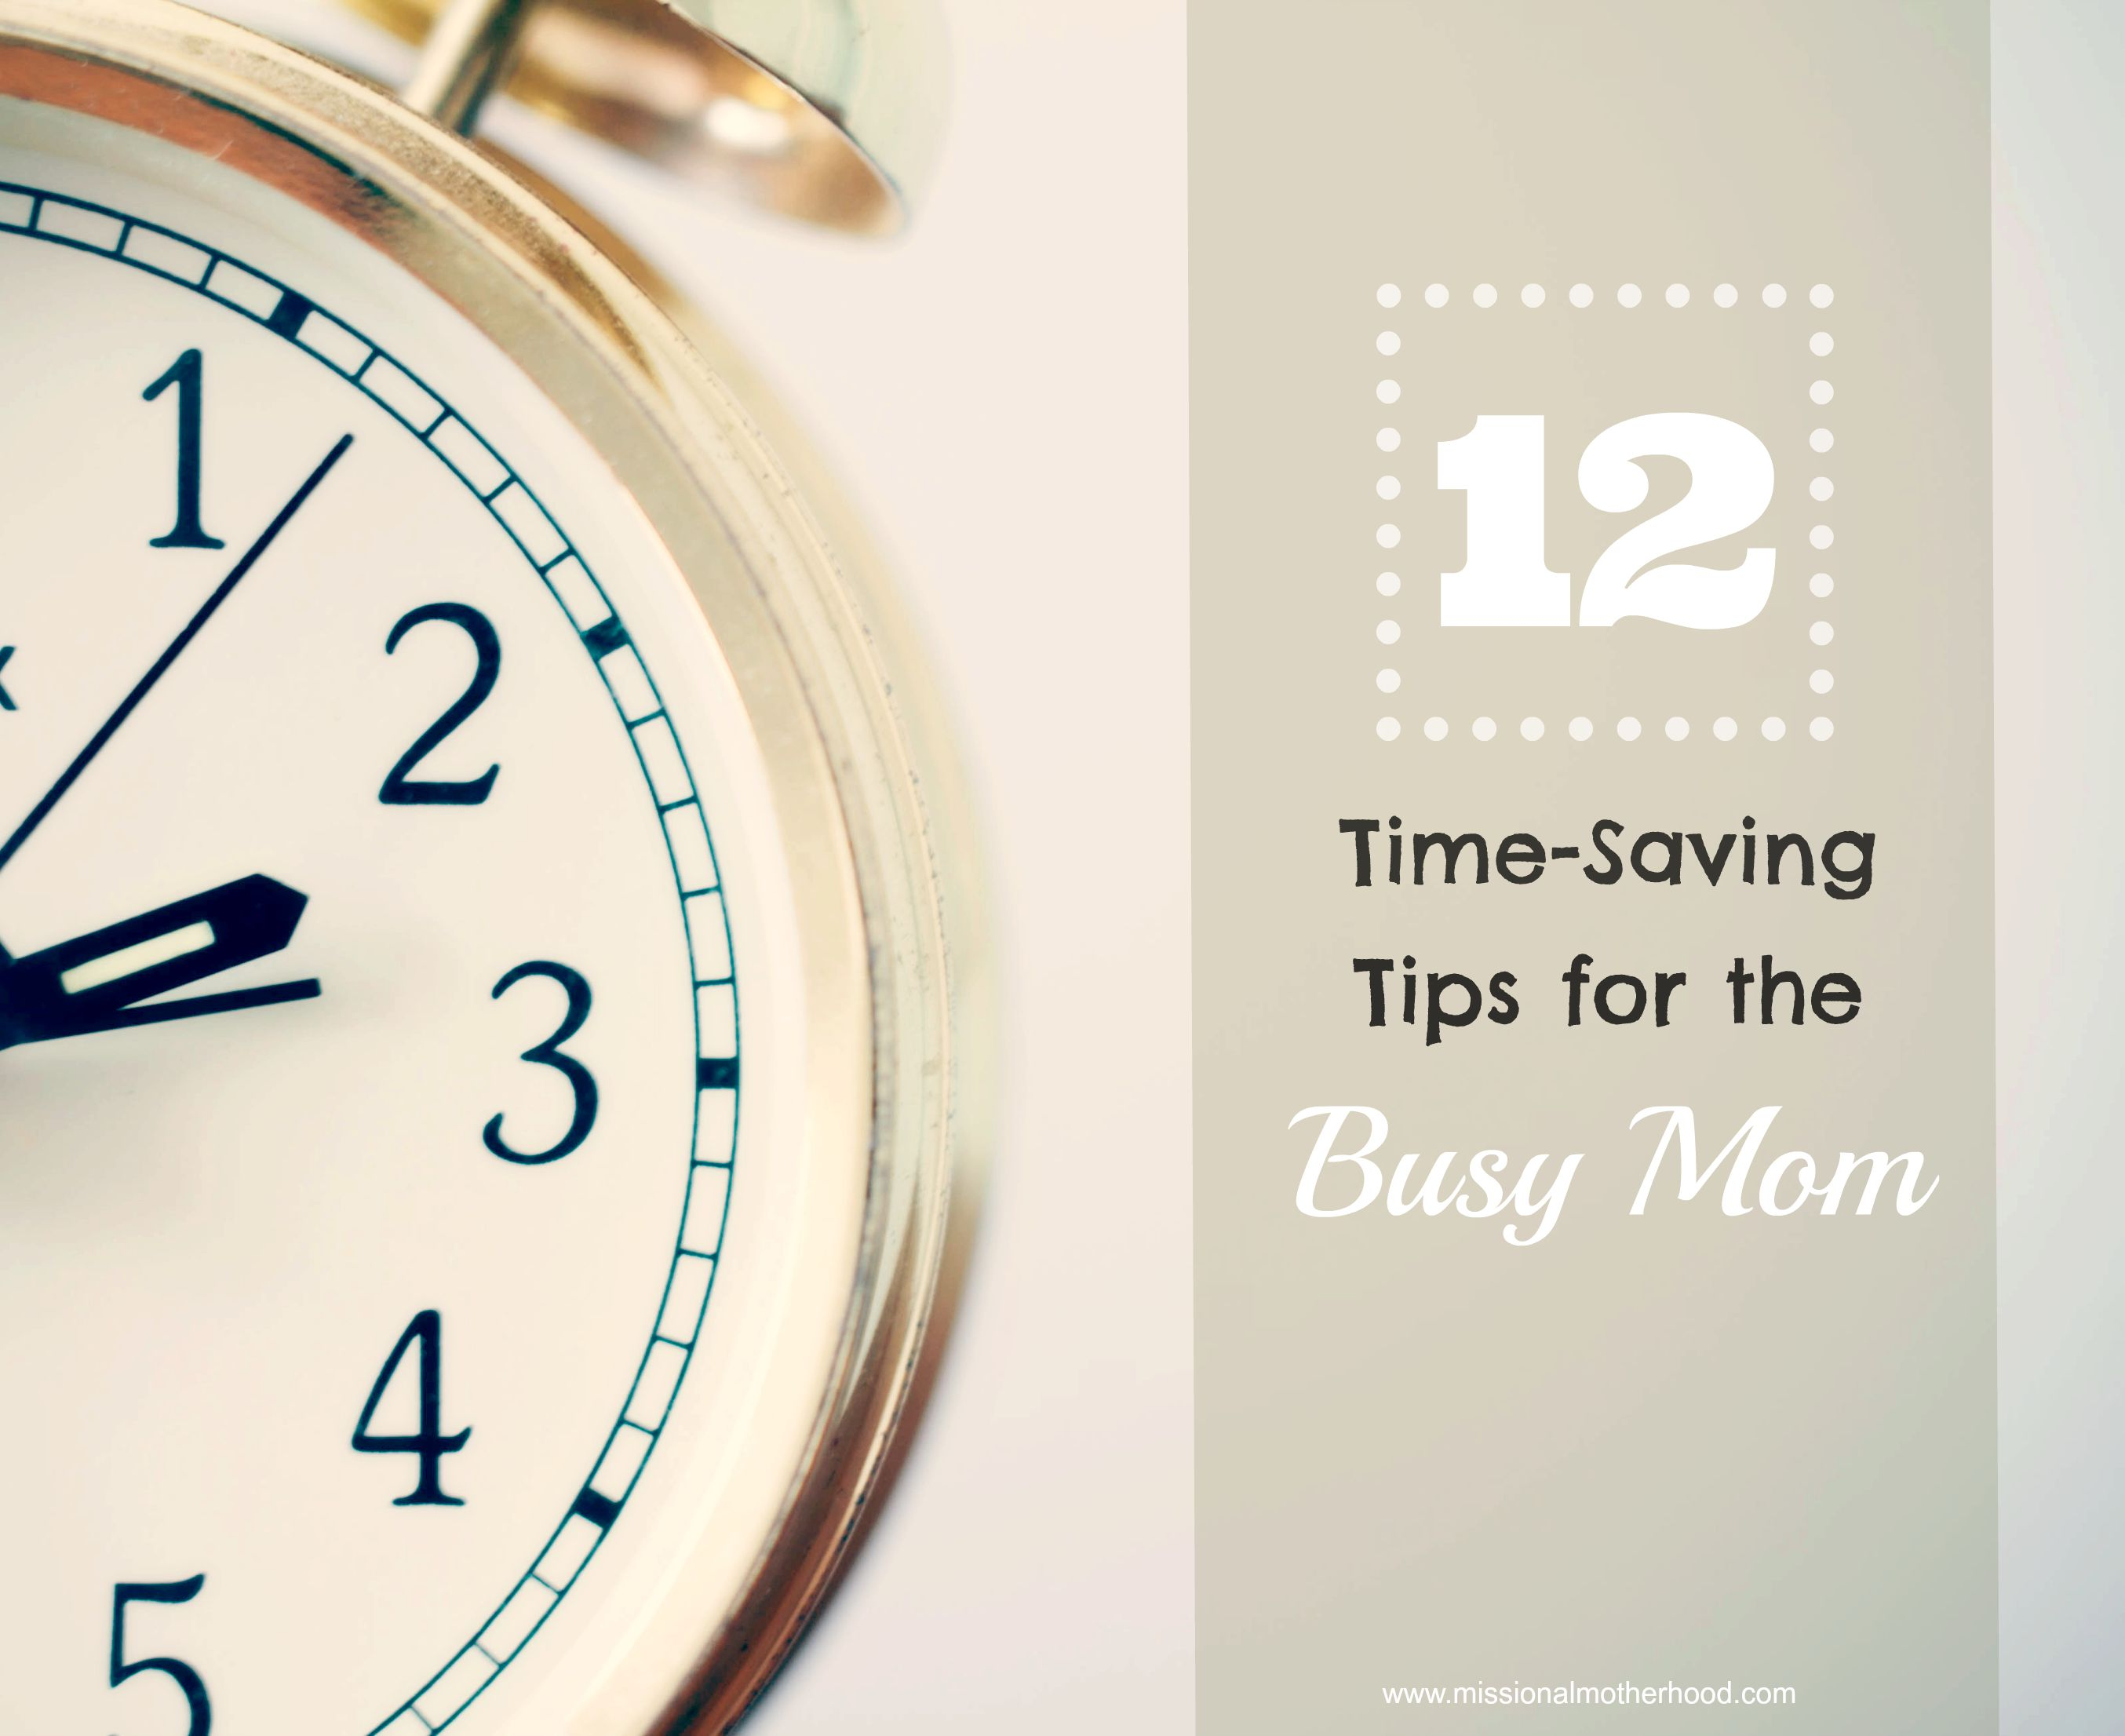 12 Time-Saving Tips for Busy Moms